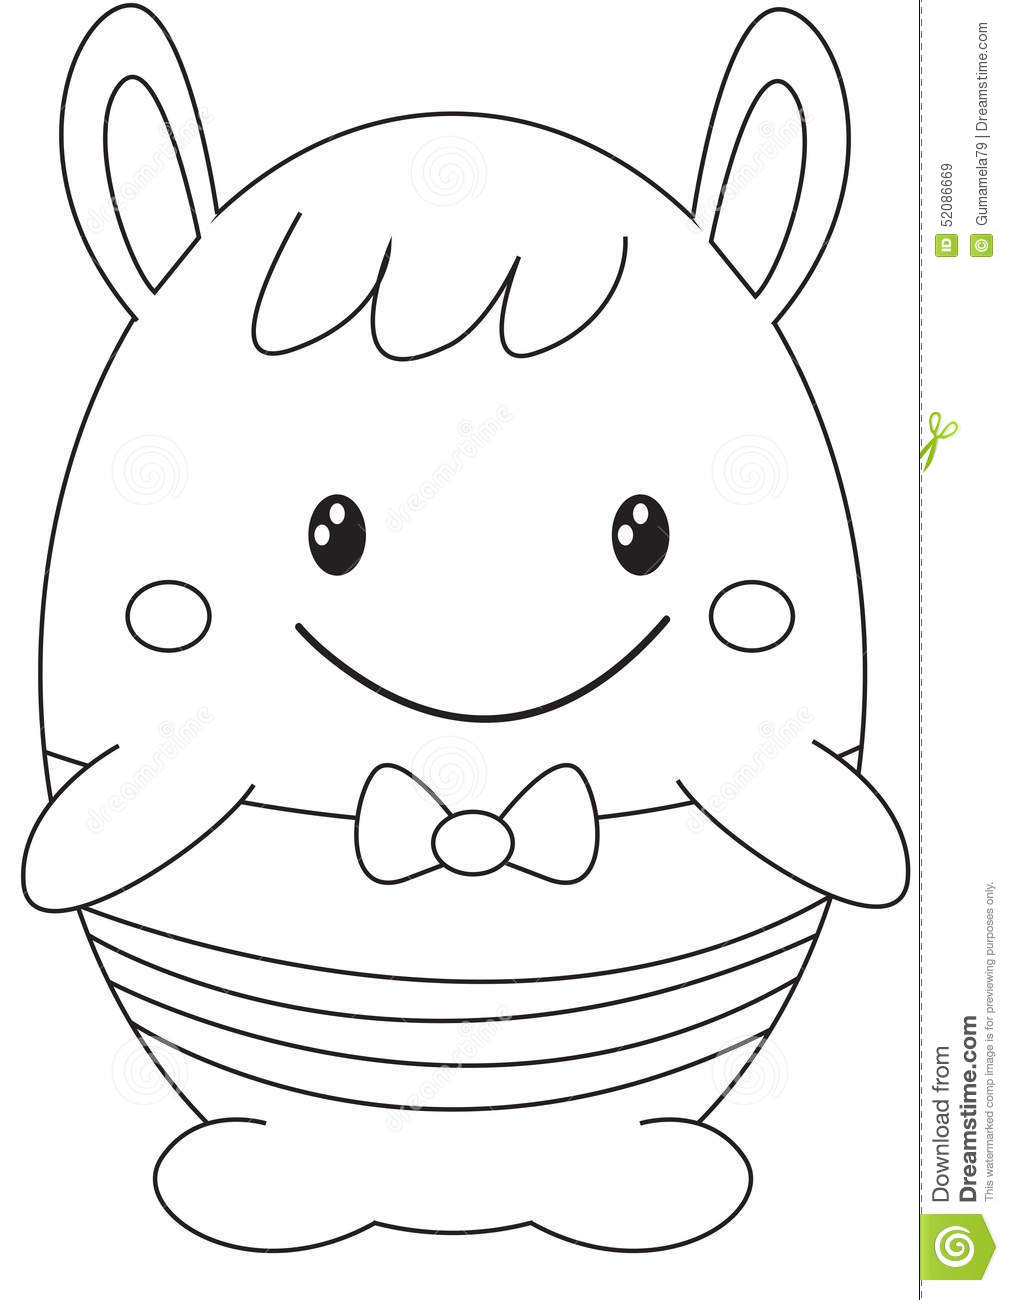 Cartoon Toys Objects Coloring Page Vector Illustration